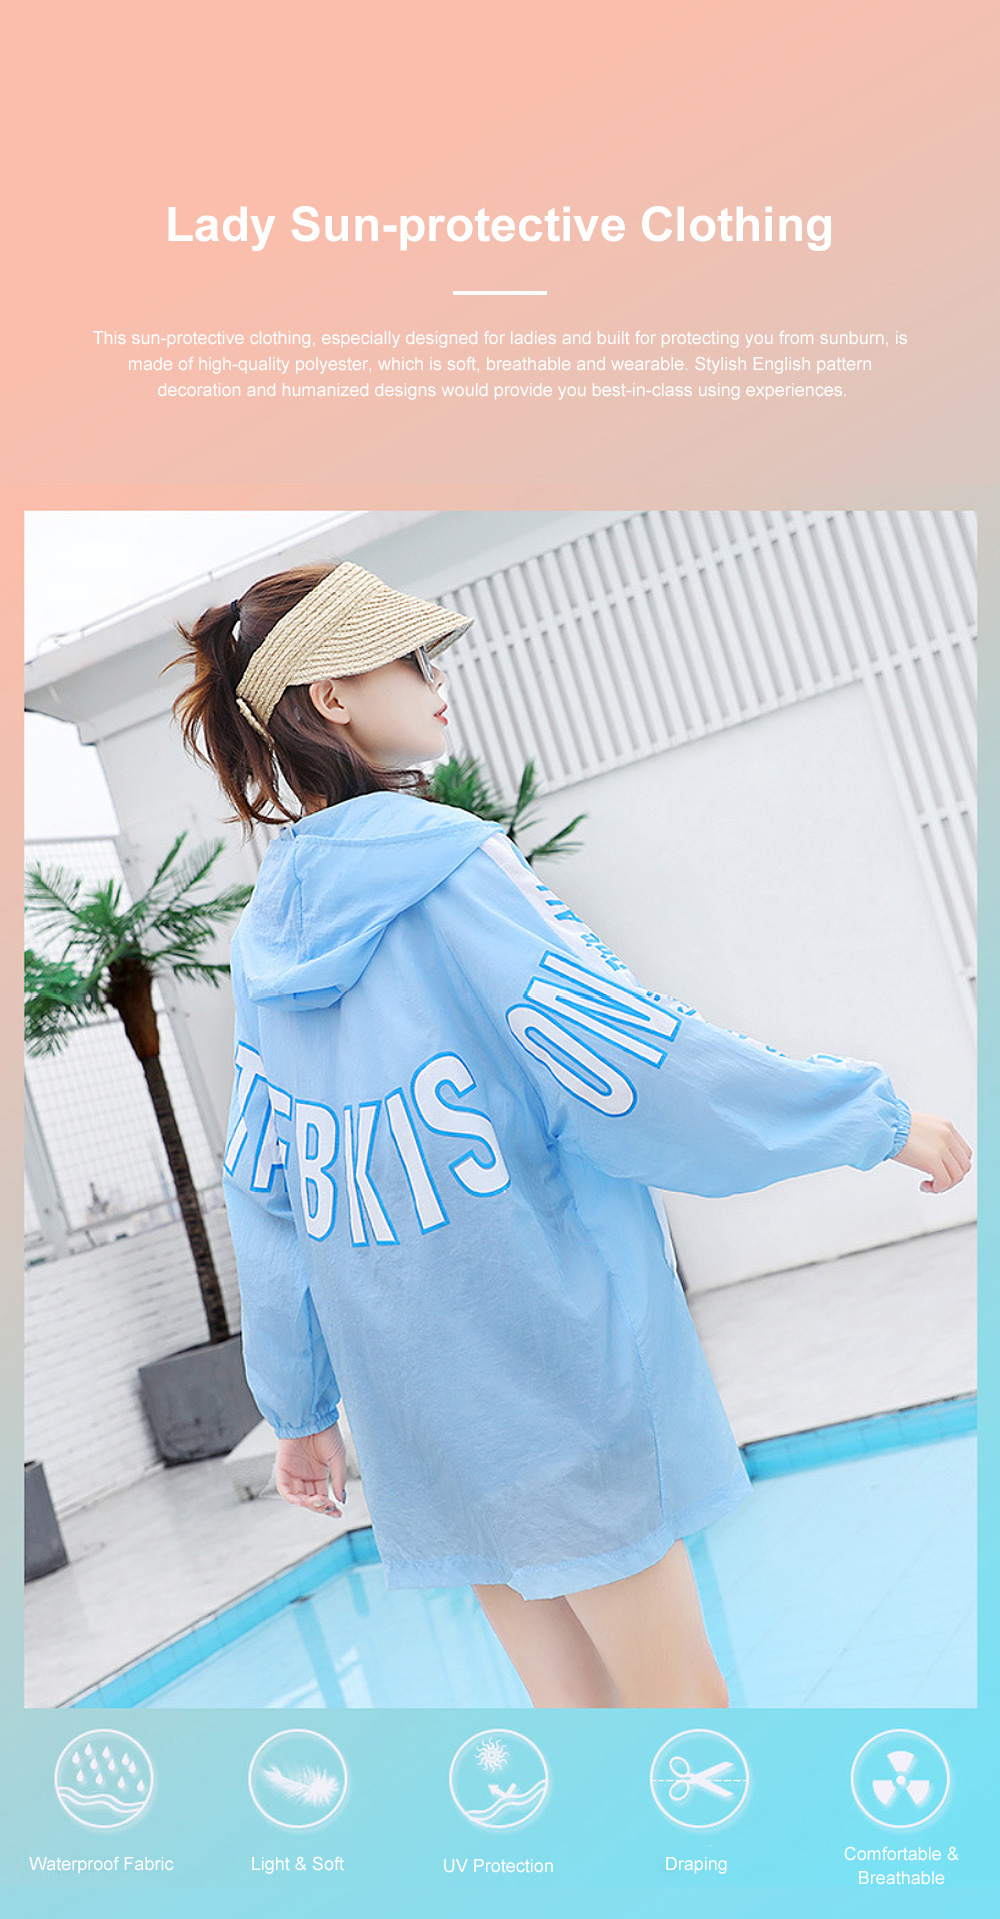 Stylish English Decoration Ultra-thin Sun-protective Clothing, Ultraviolet-Proof Quick Dry Outdoors Coat for Ladies 0